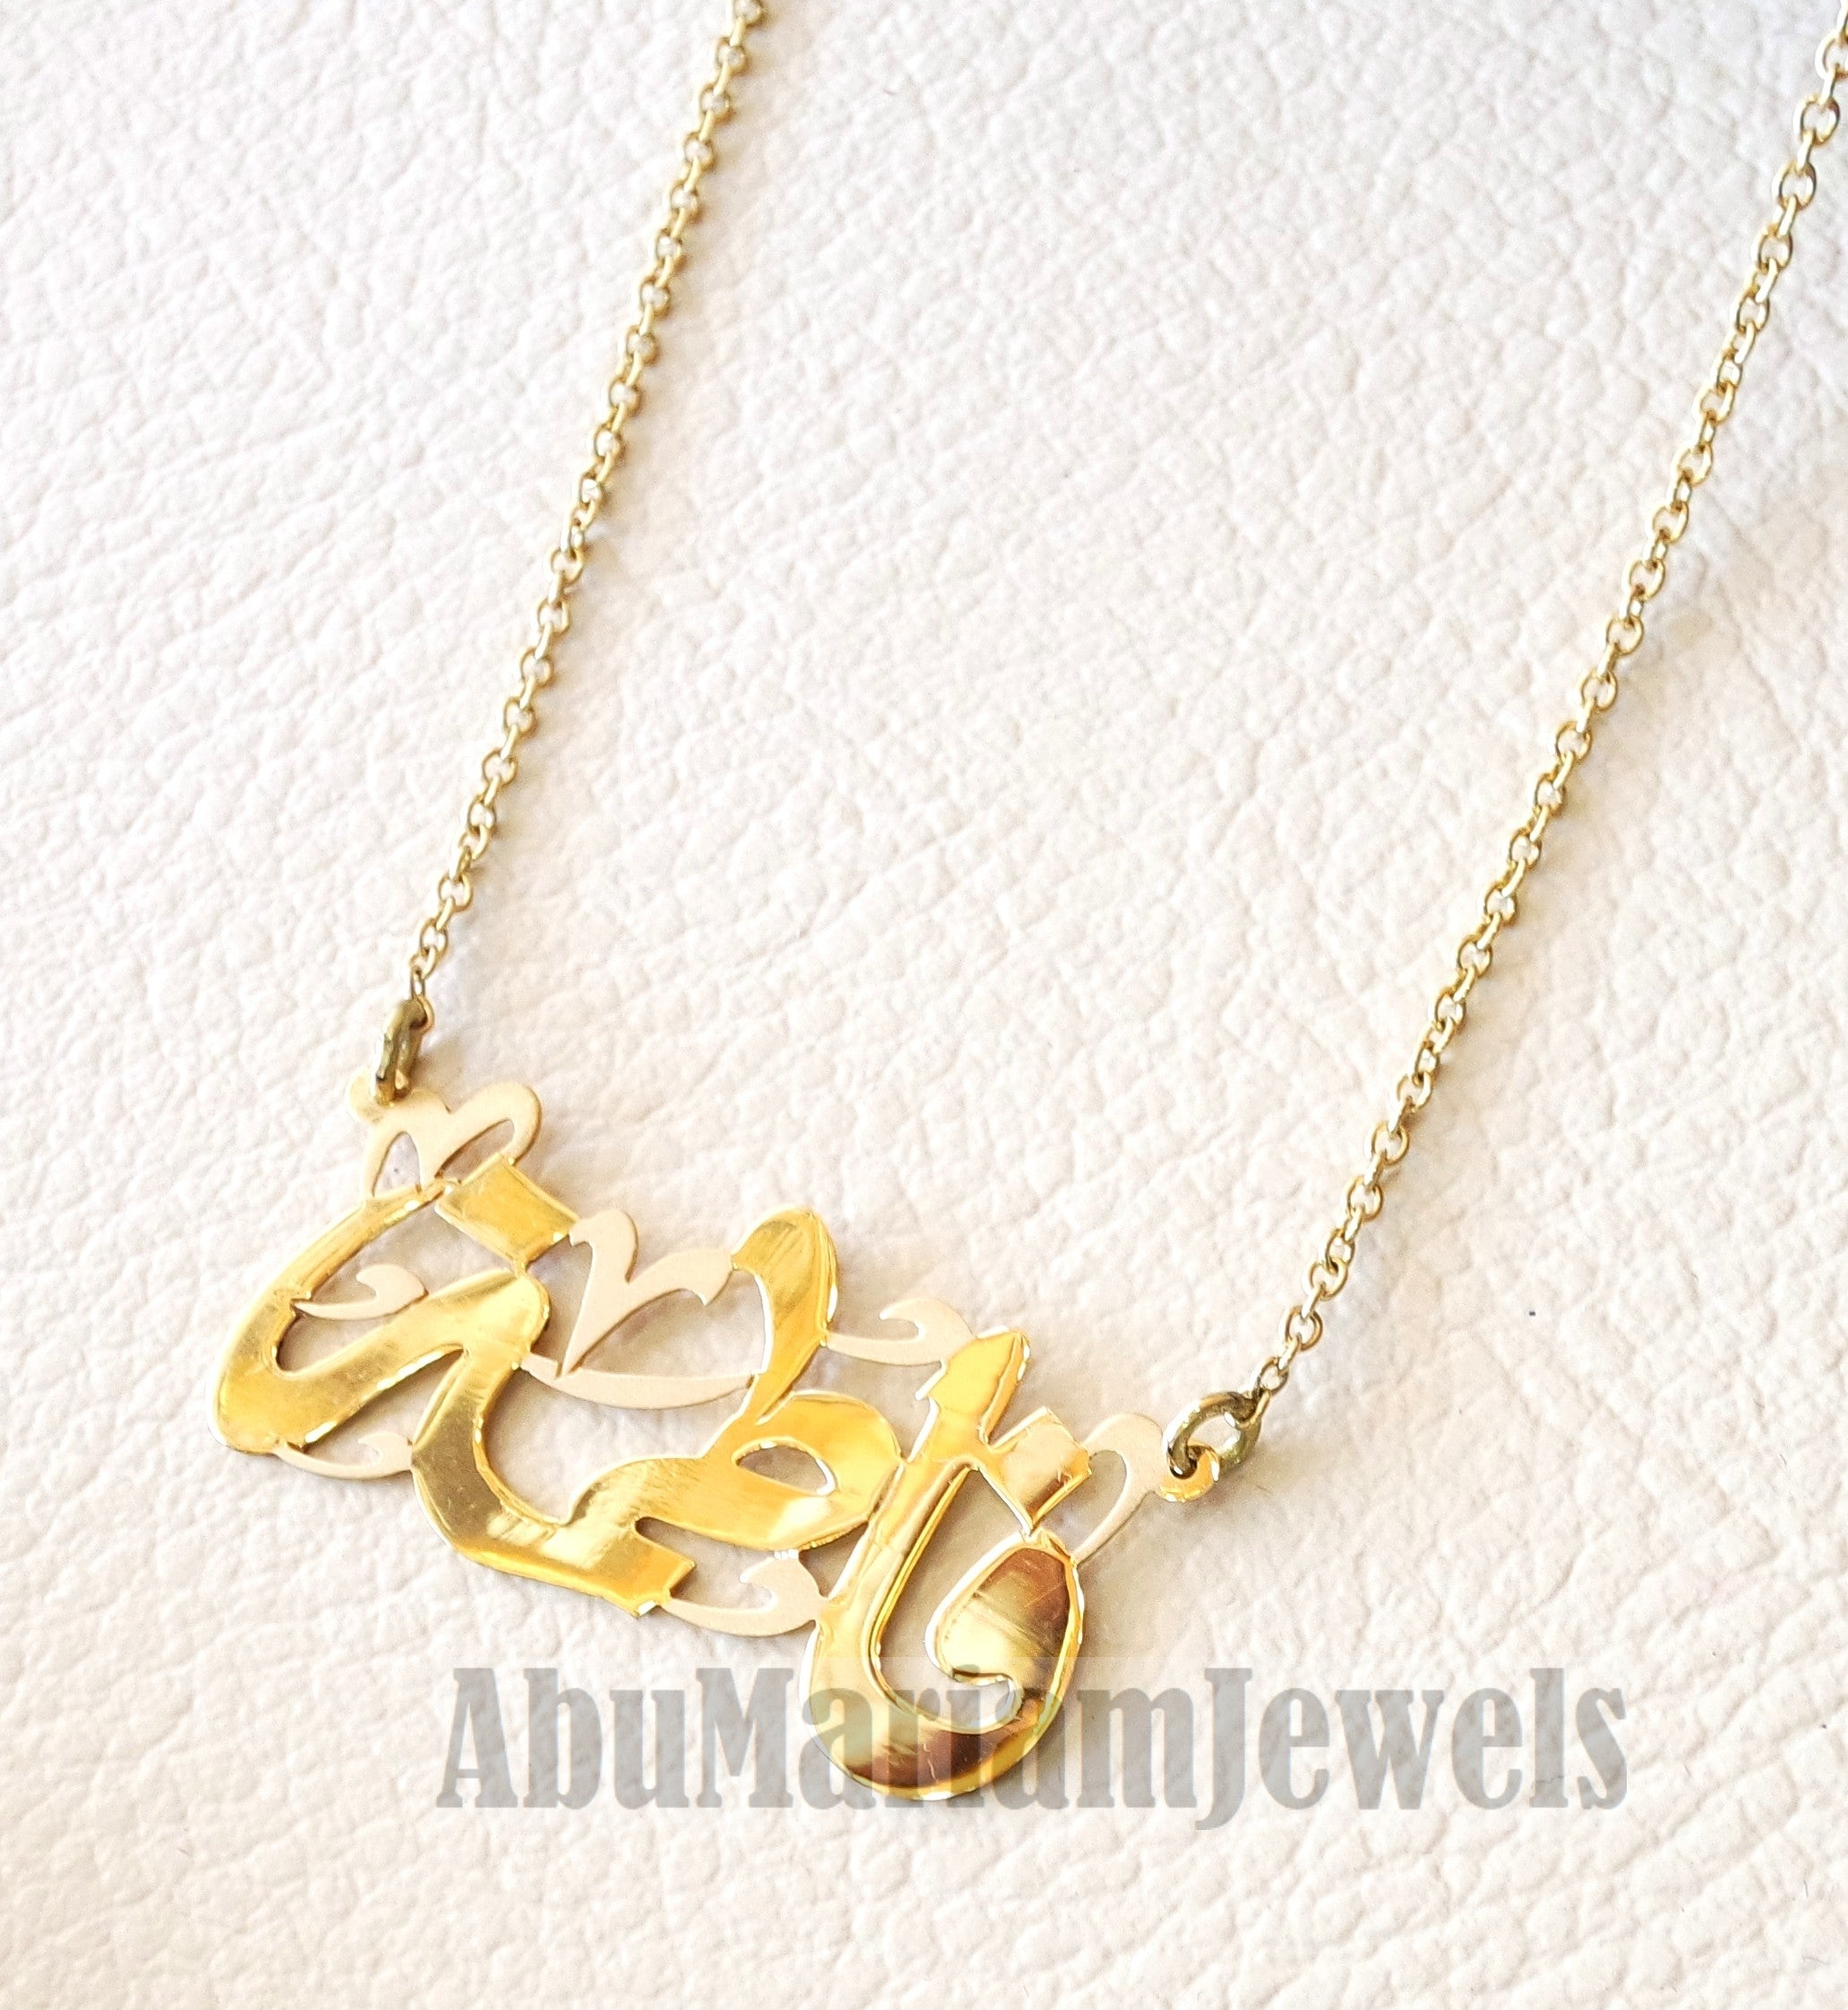 charm necklaces com reasons you should pendant why personalized necklace occqfpo styleskier get a heirloom modern gold